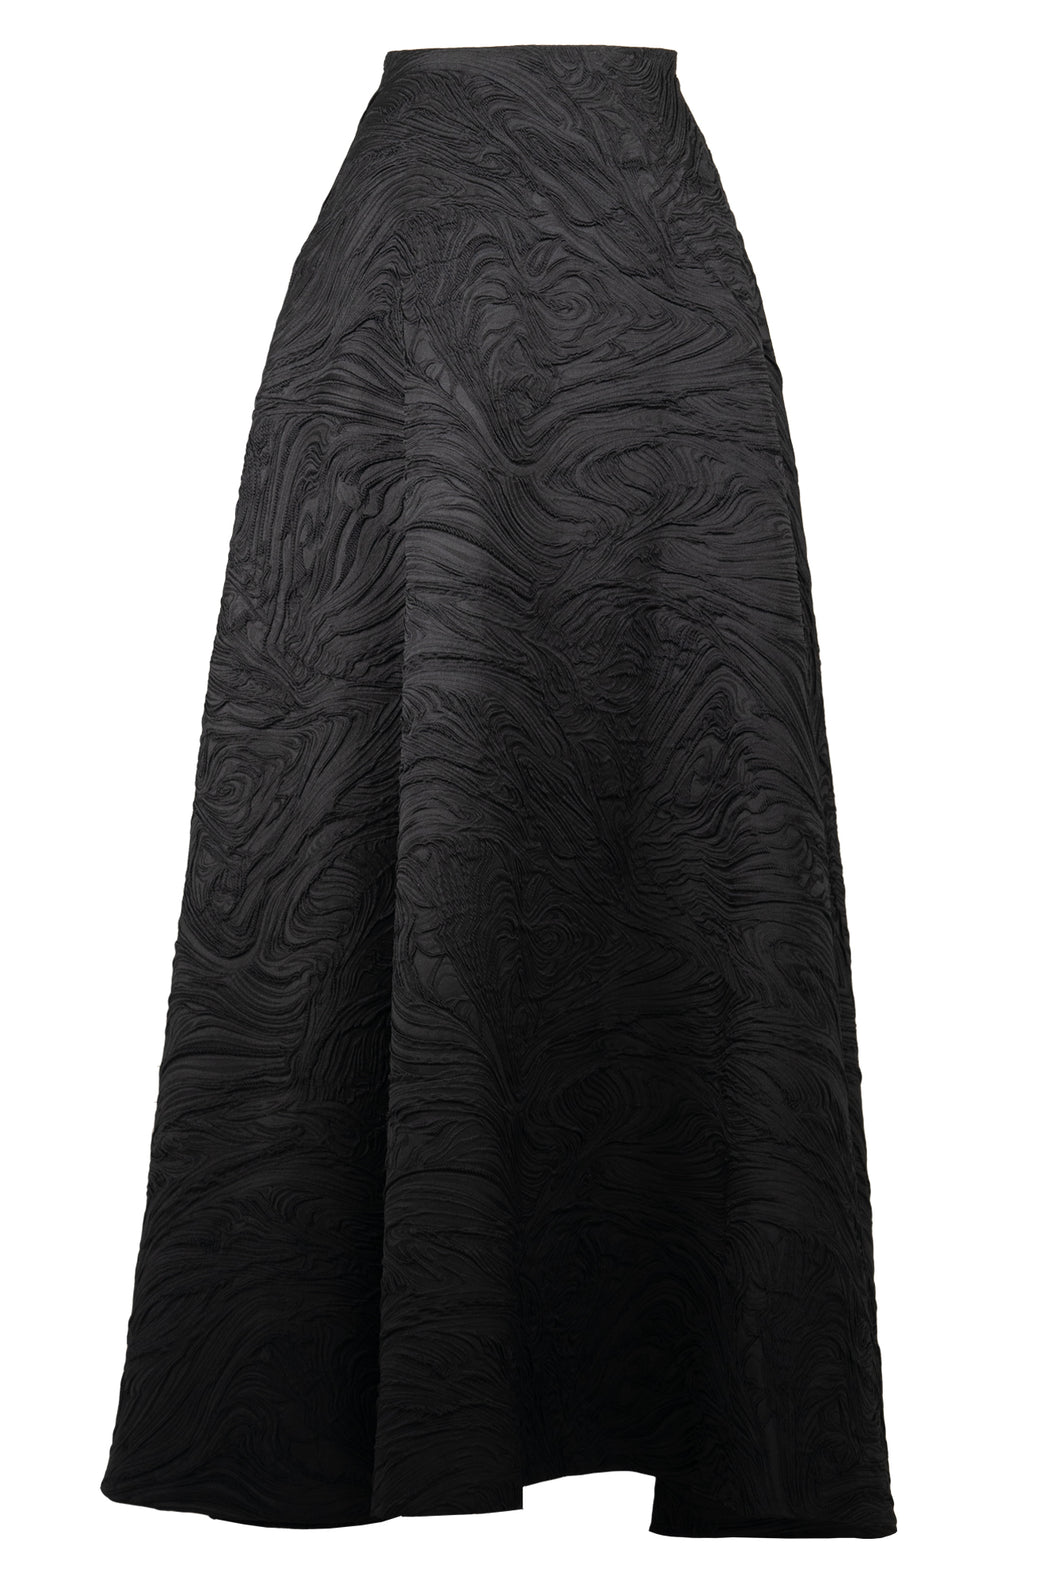 Embossed Black Circle Skirt